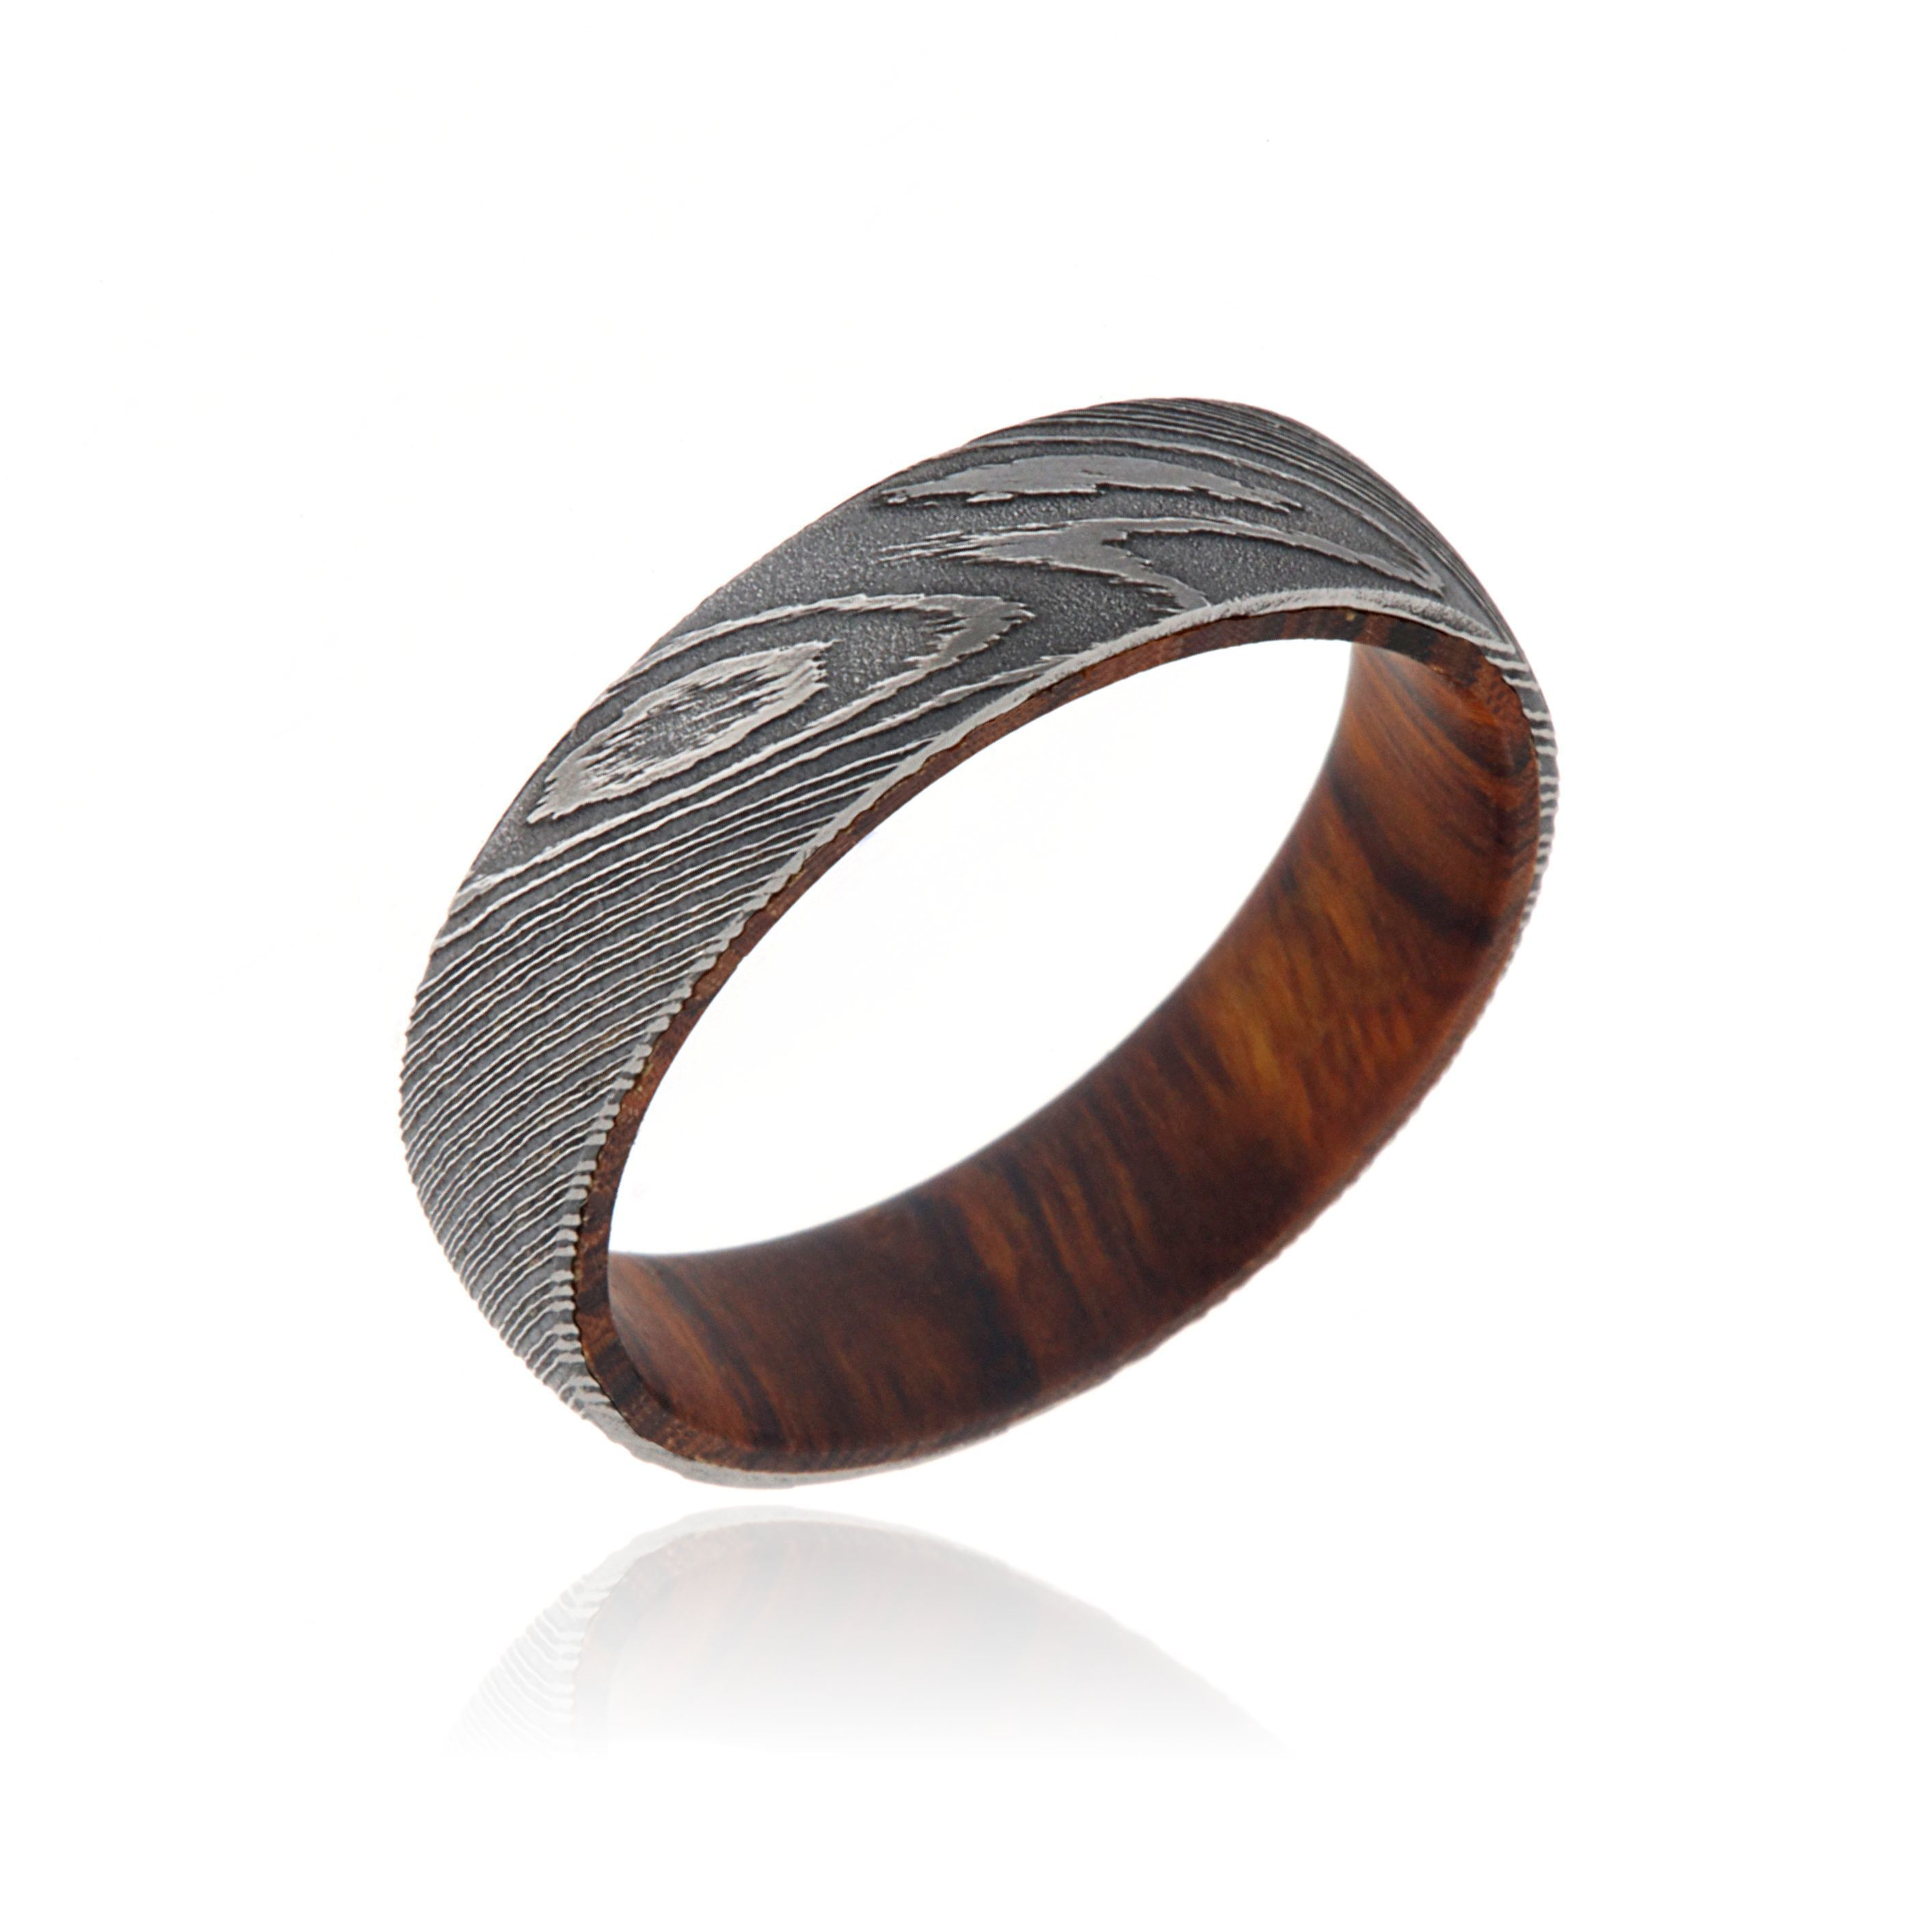 6mm Damascus Steel Ring With Iron Wood Sleeve For Men Free Shipping Today 16197320